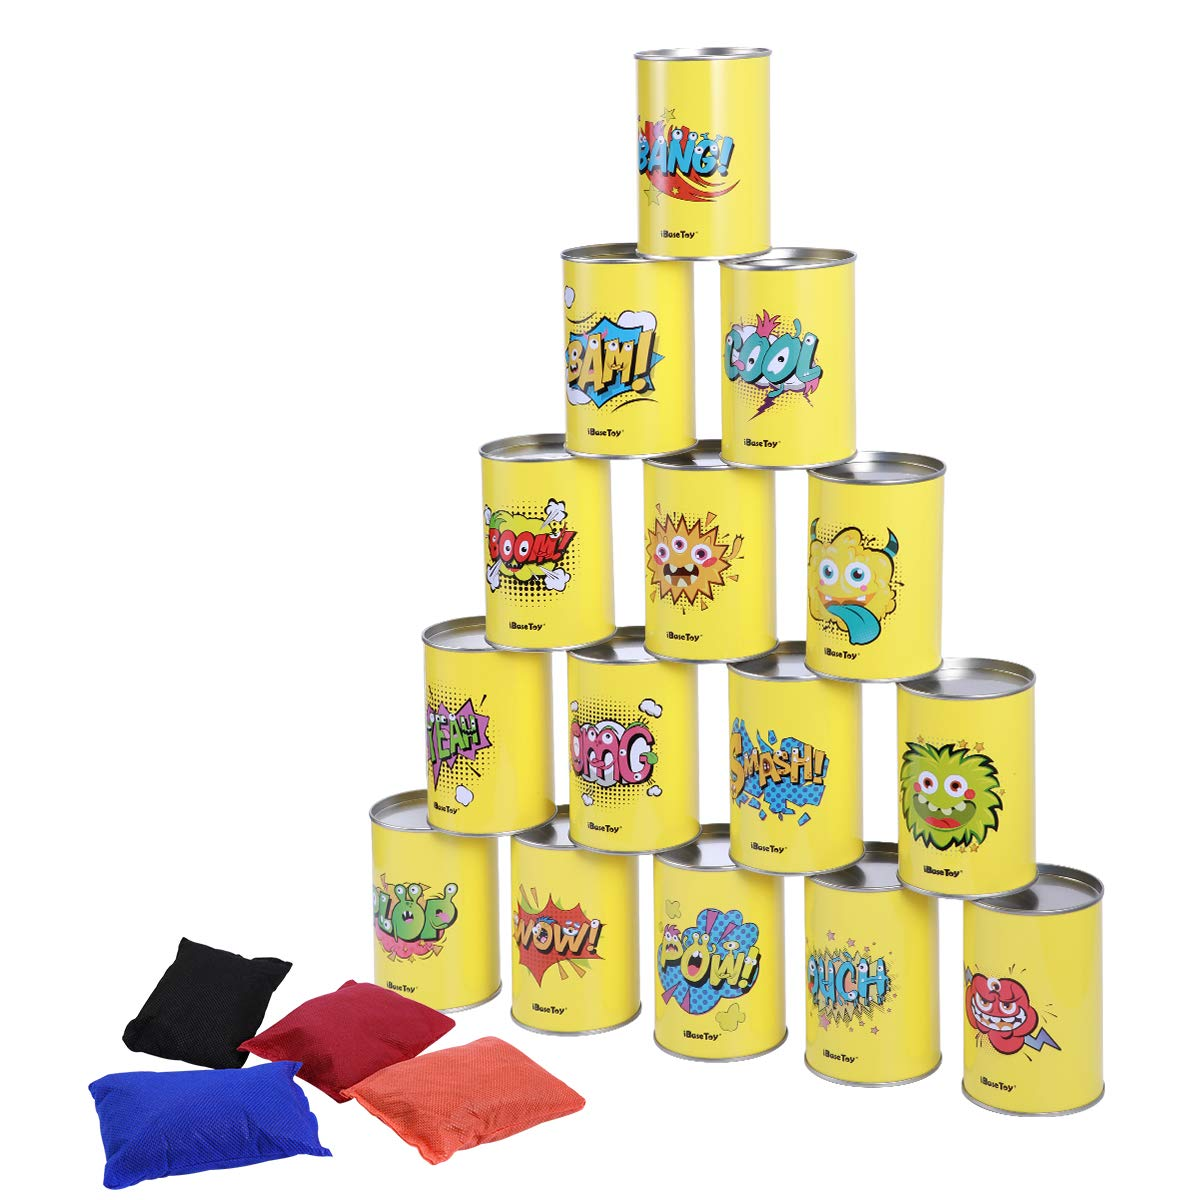 iBaseToy Party Games for Kids, Carnival Games Bean Bag Can Toss Game for Birthday Party, 15 PCs